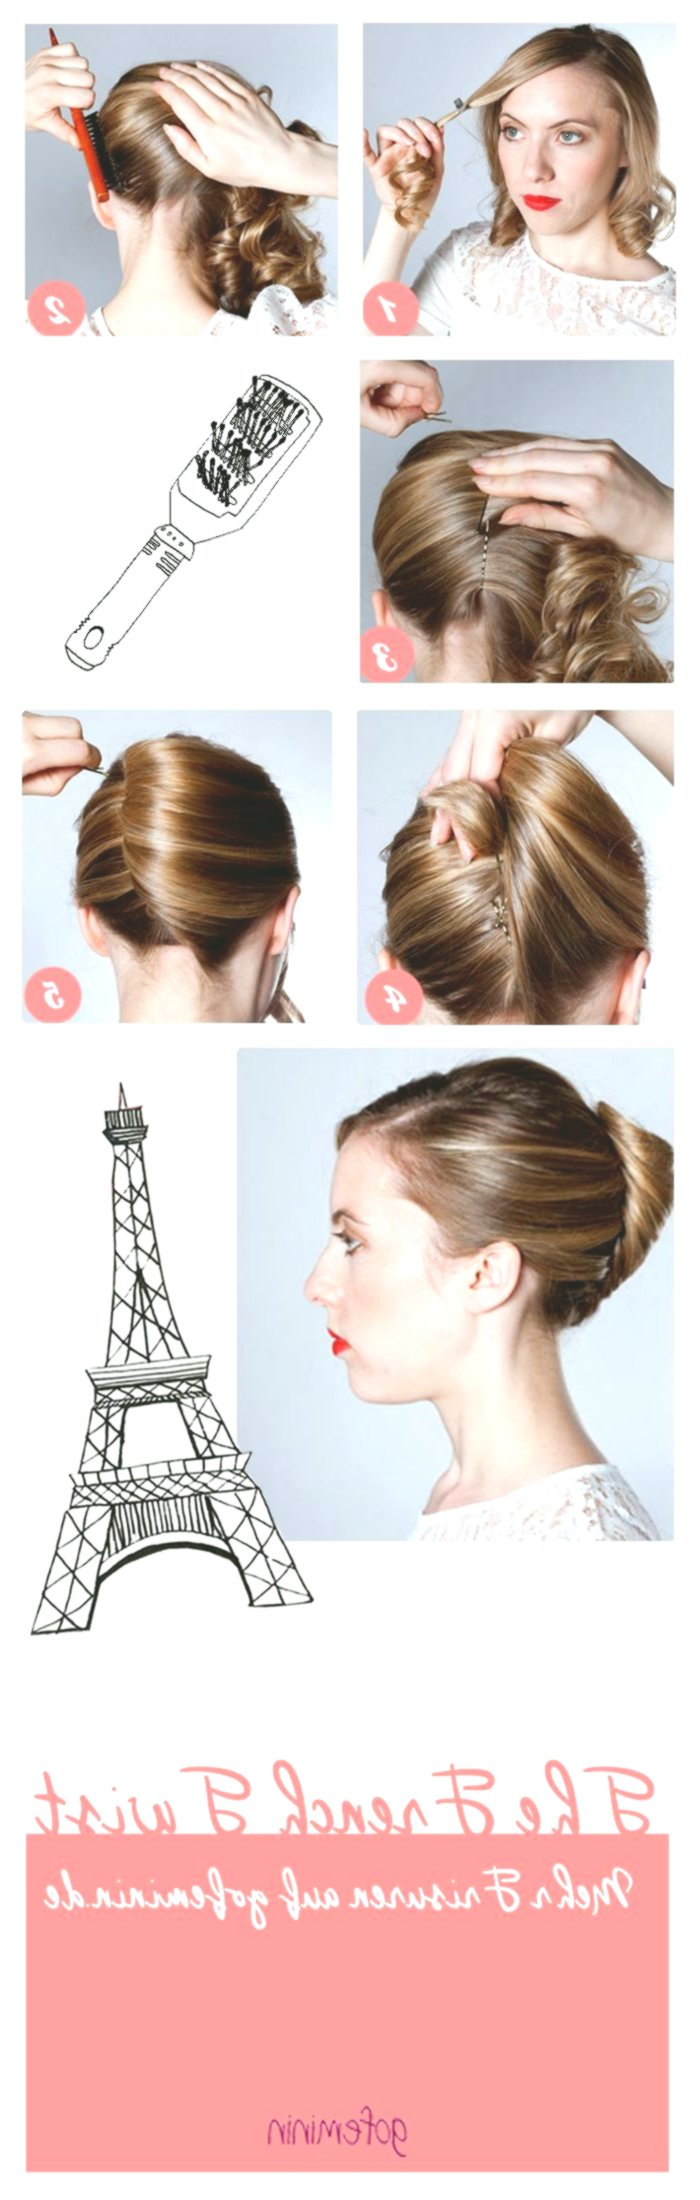 excellent hairstyles to make yourself portrait-Fascinating hairstyles to make your own models